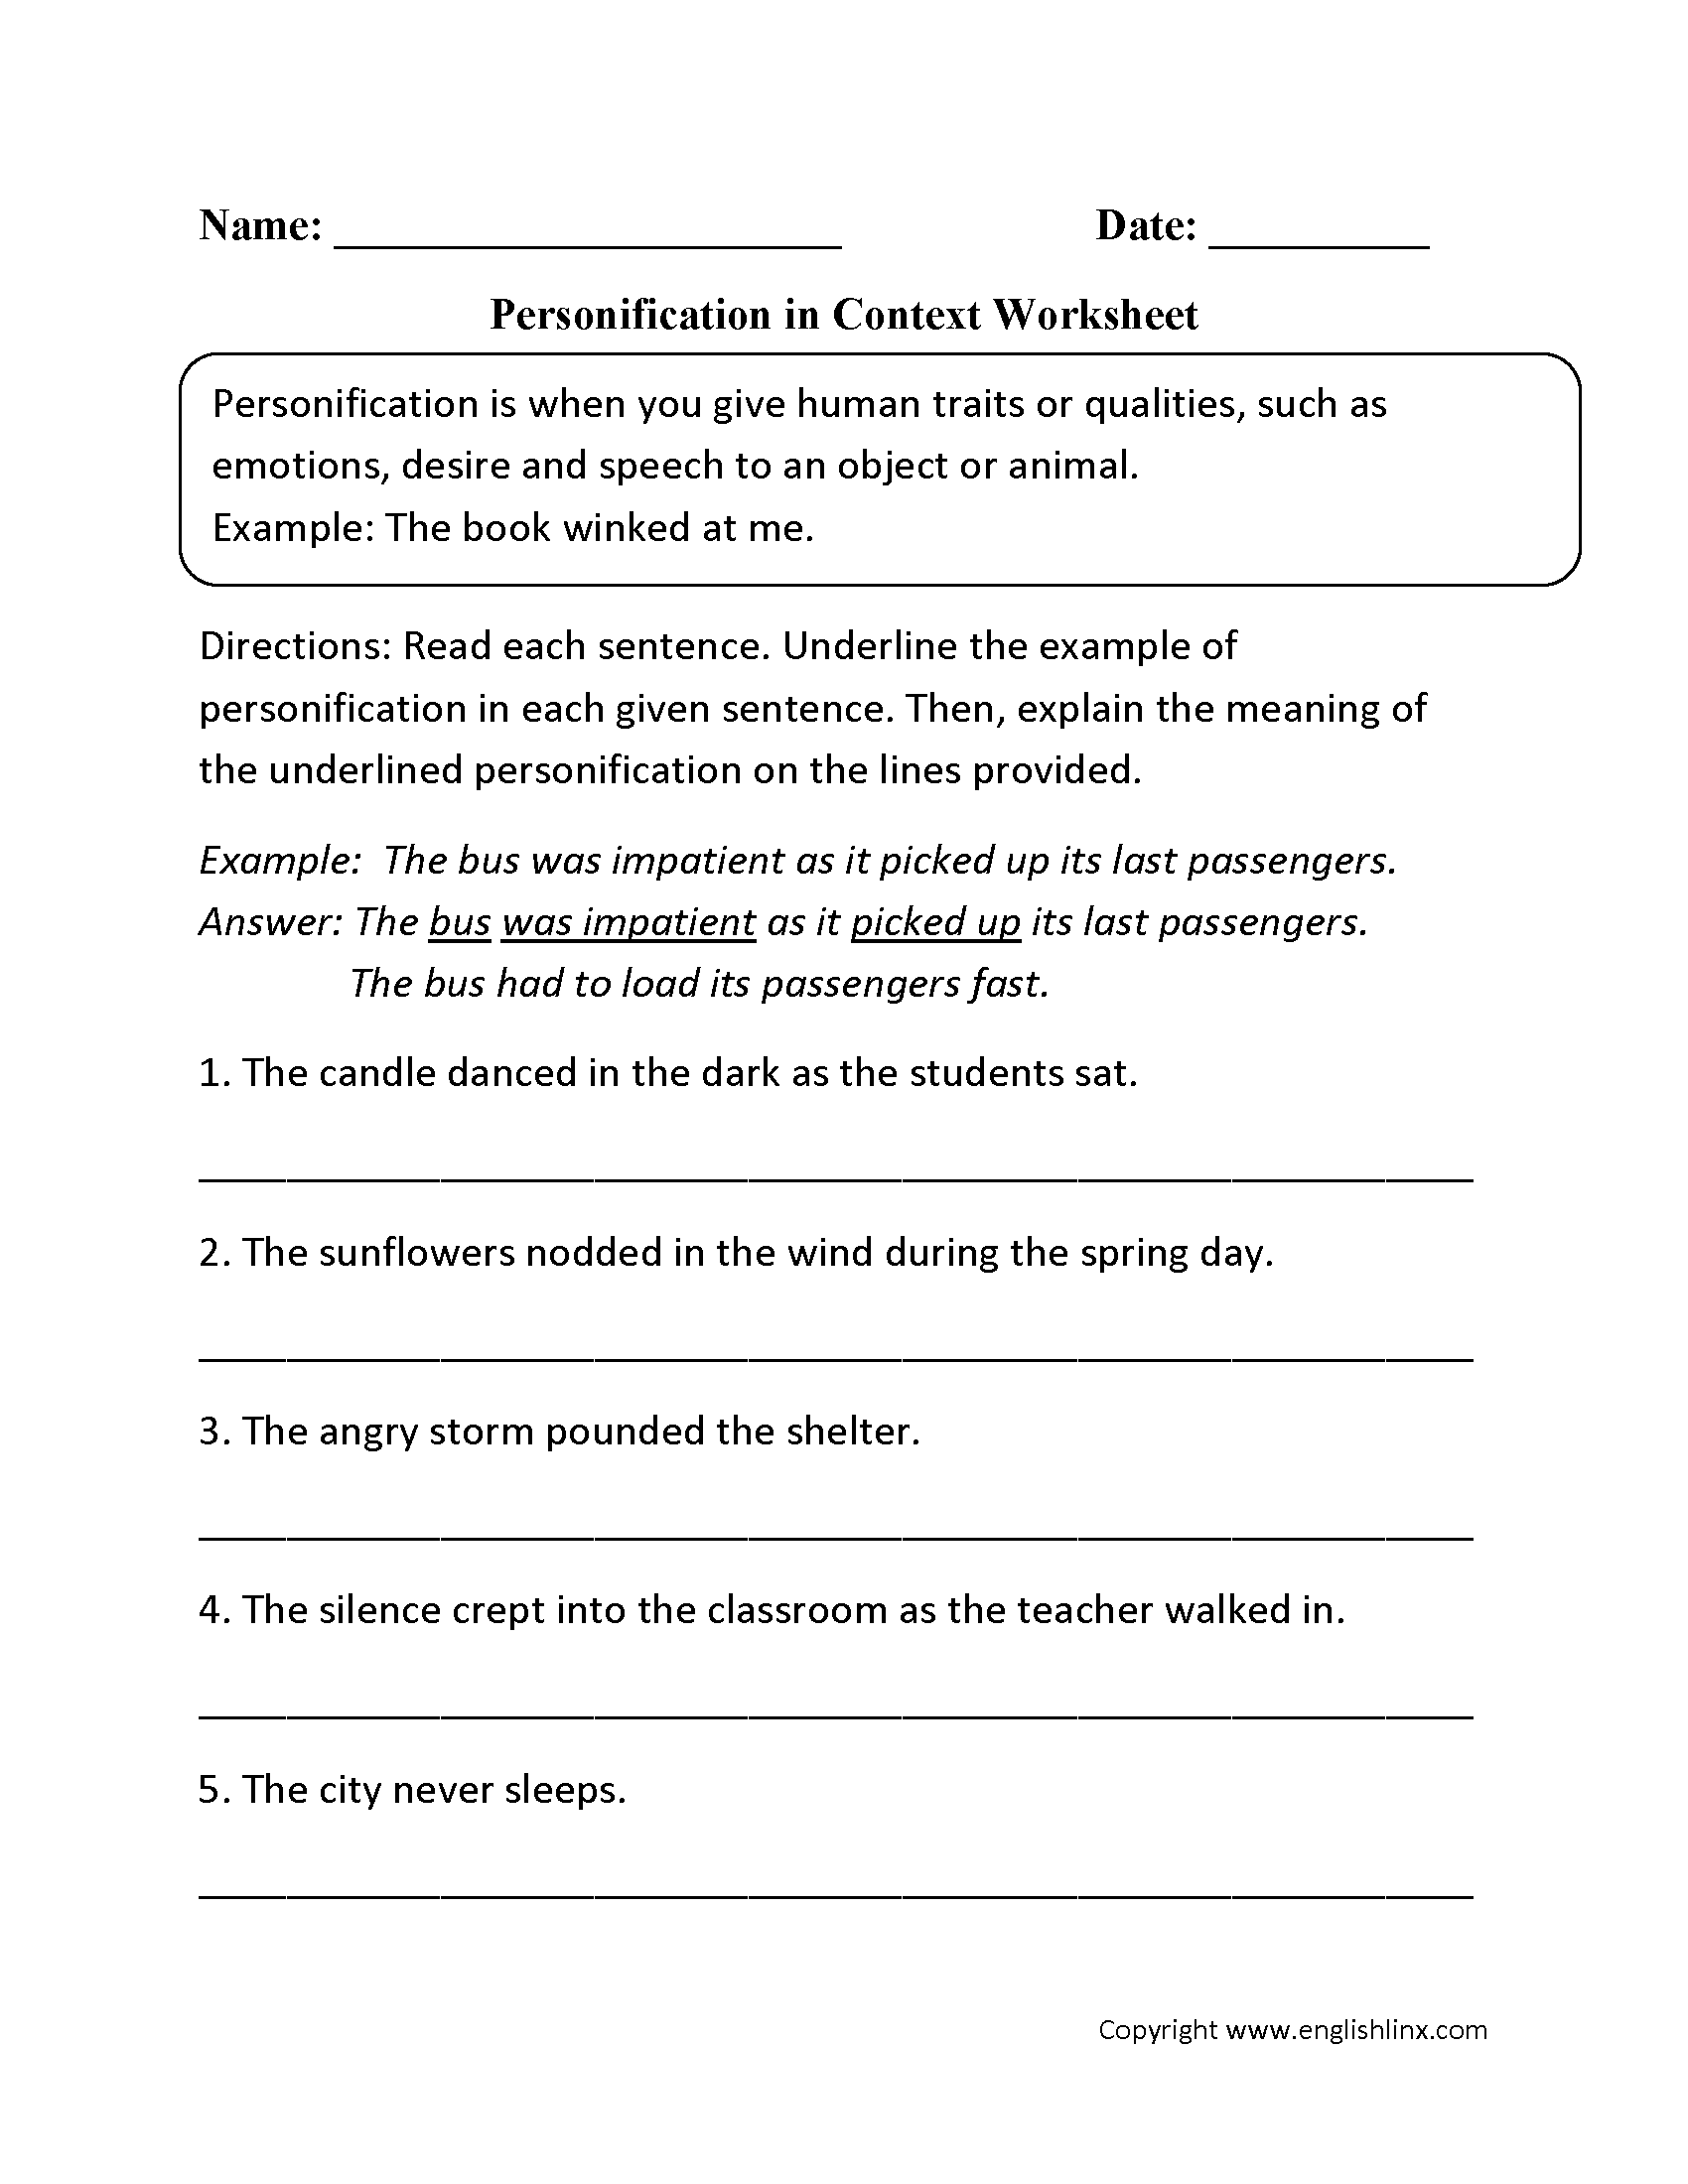 Worksheets Hyperbole Worksheets personification in context worksheet learning pinterest worksheet